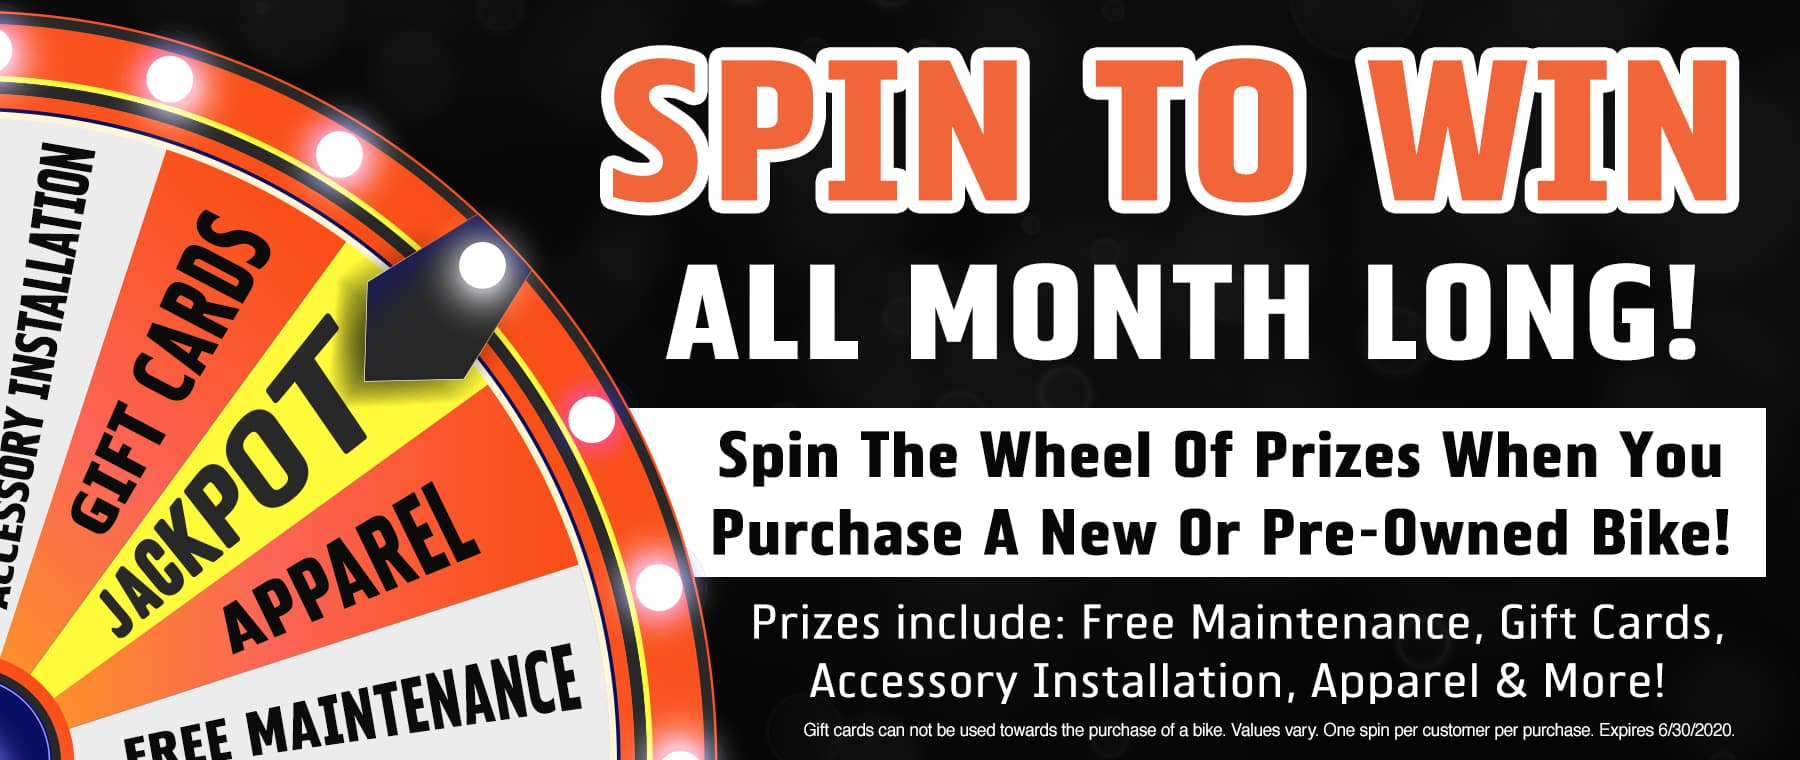 Spin to Win All Month Long